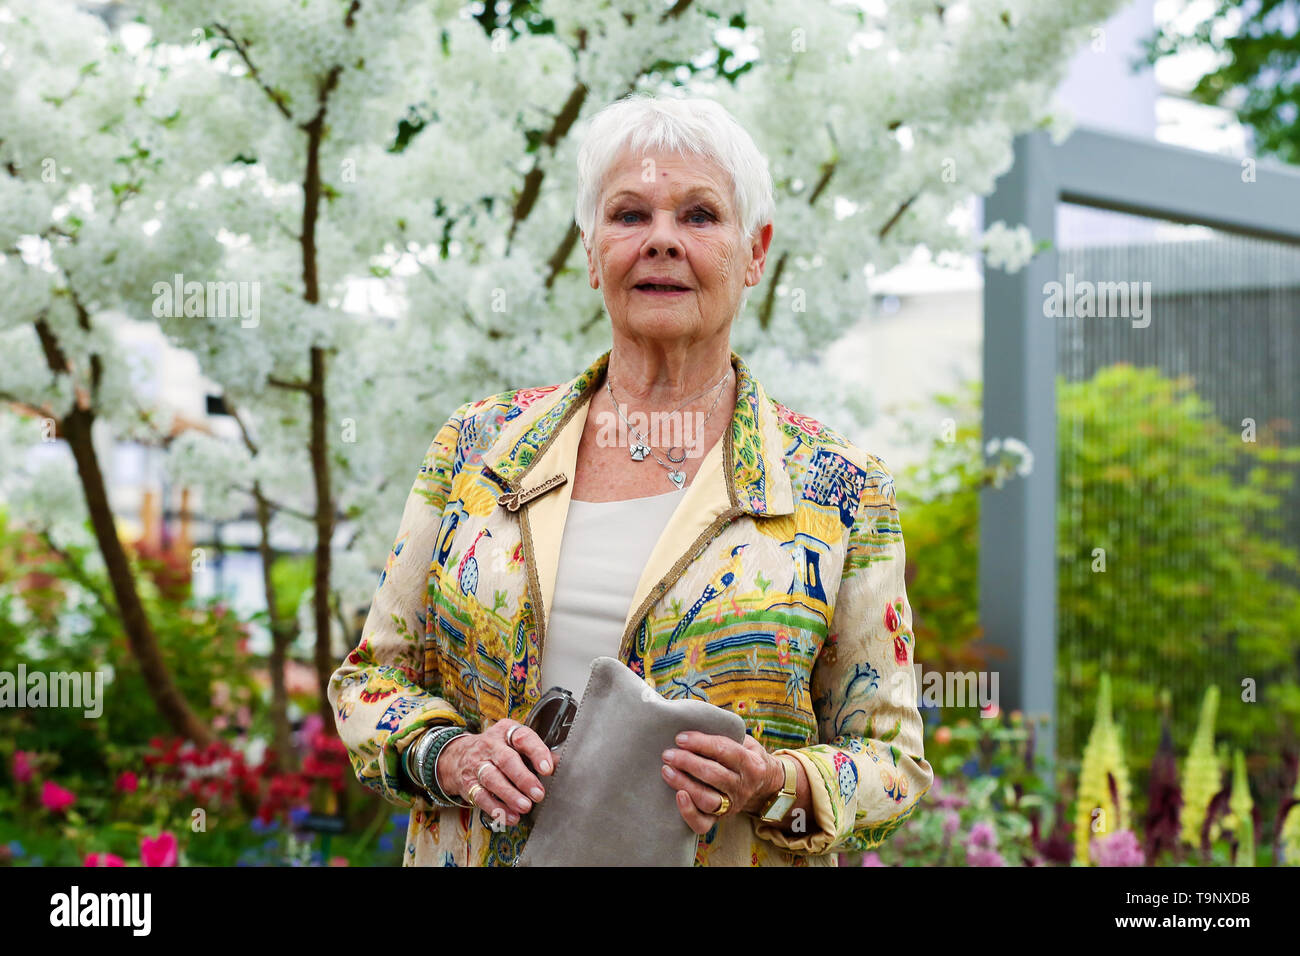 Royal Hospital Chelsea. West London, UK. 20th May, 2019. Dame Judith Dench visits Hillier Nurseries. The Royal Horticultural Society Chelsea Flower Show is an annual garden show held over five days in the grounds of the Royal Hospital Chelsea in West London. The show is open to the public from 21 May until 25 May 2019. Credit: Dinendra Haria/Alamy Live News Stock Photo